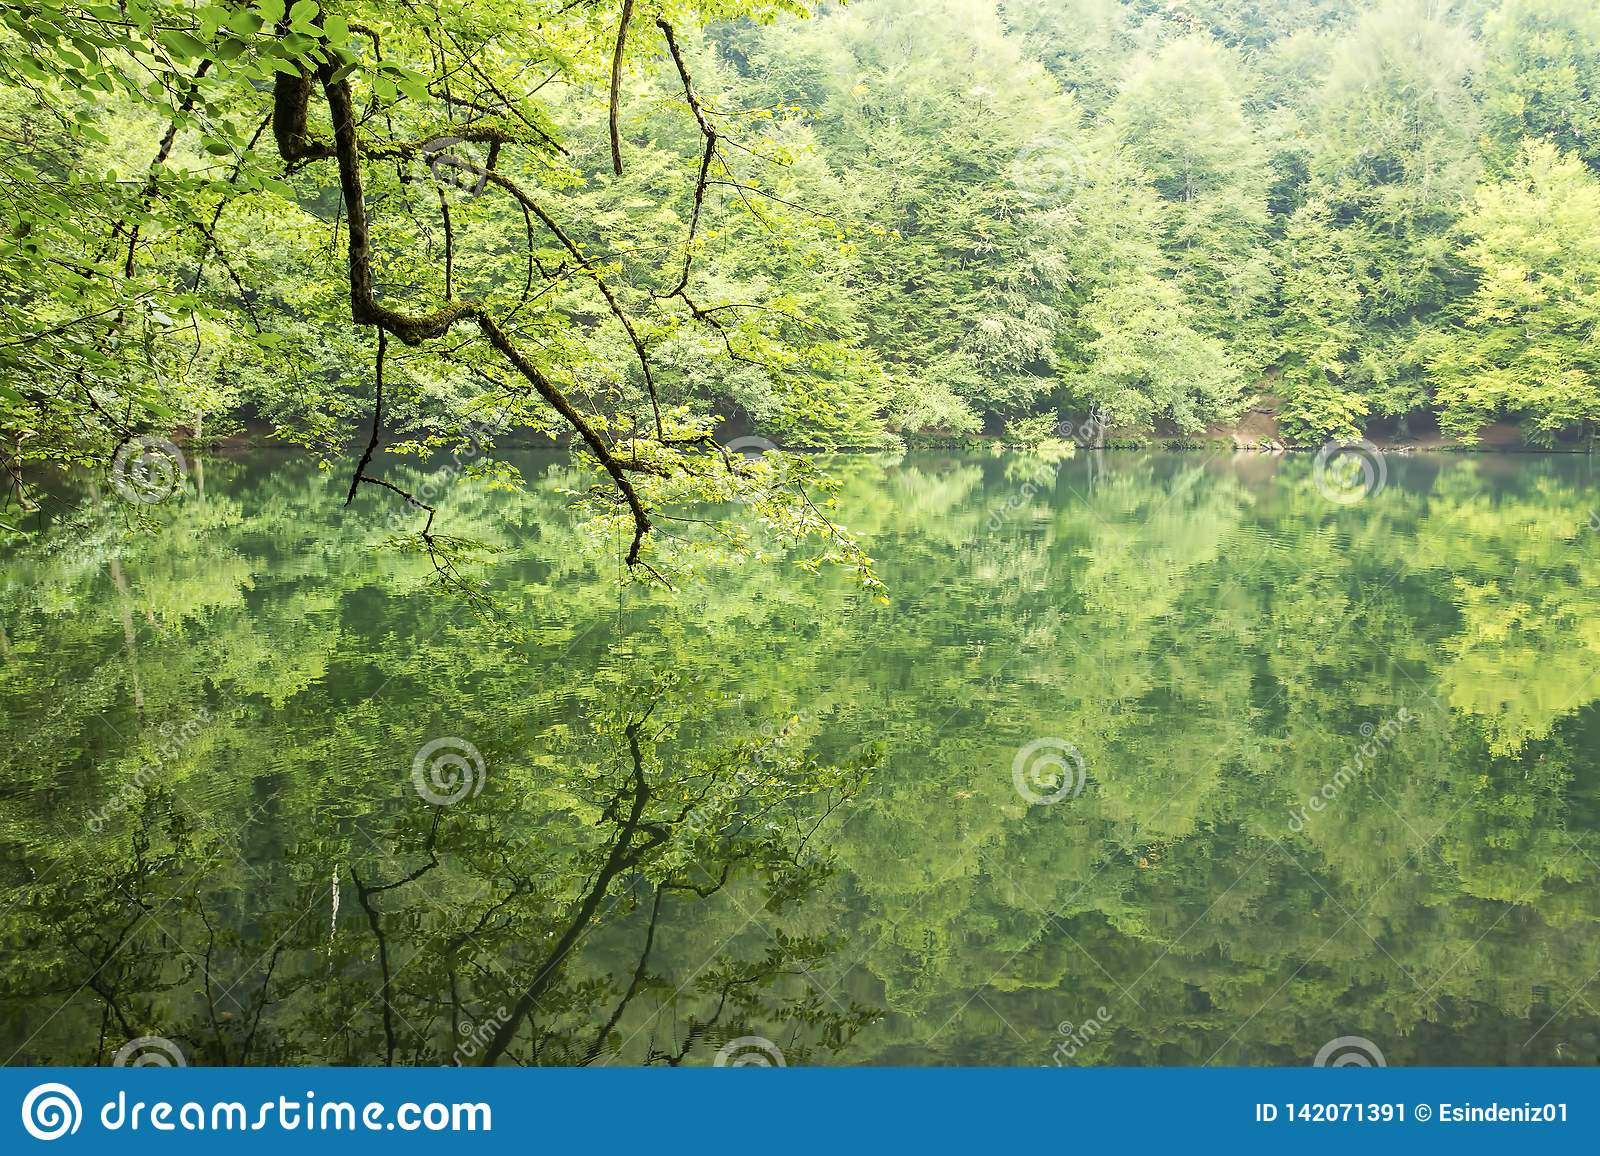 Yedigoller / Bolu / Turkey, summer season, forest landscape